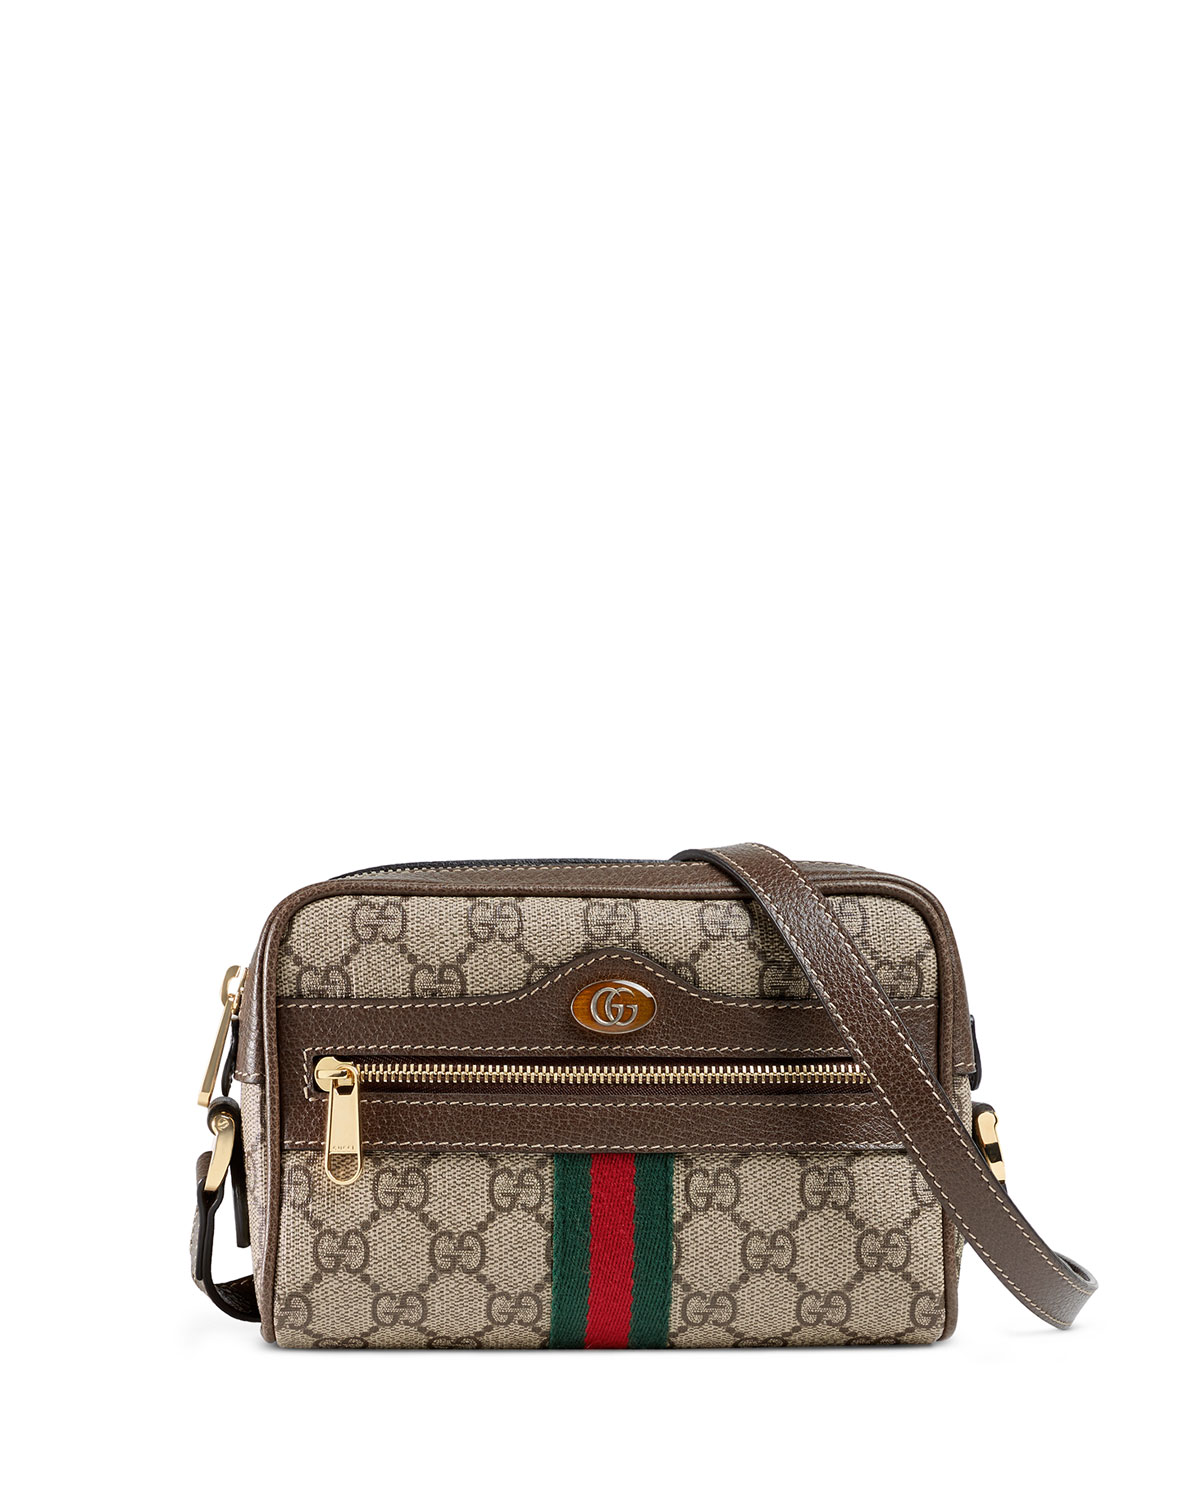 2e5add749 Gucci Ophidia Small GG Supreme Crossbody Bag